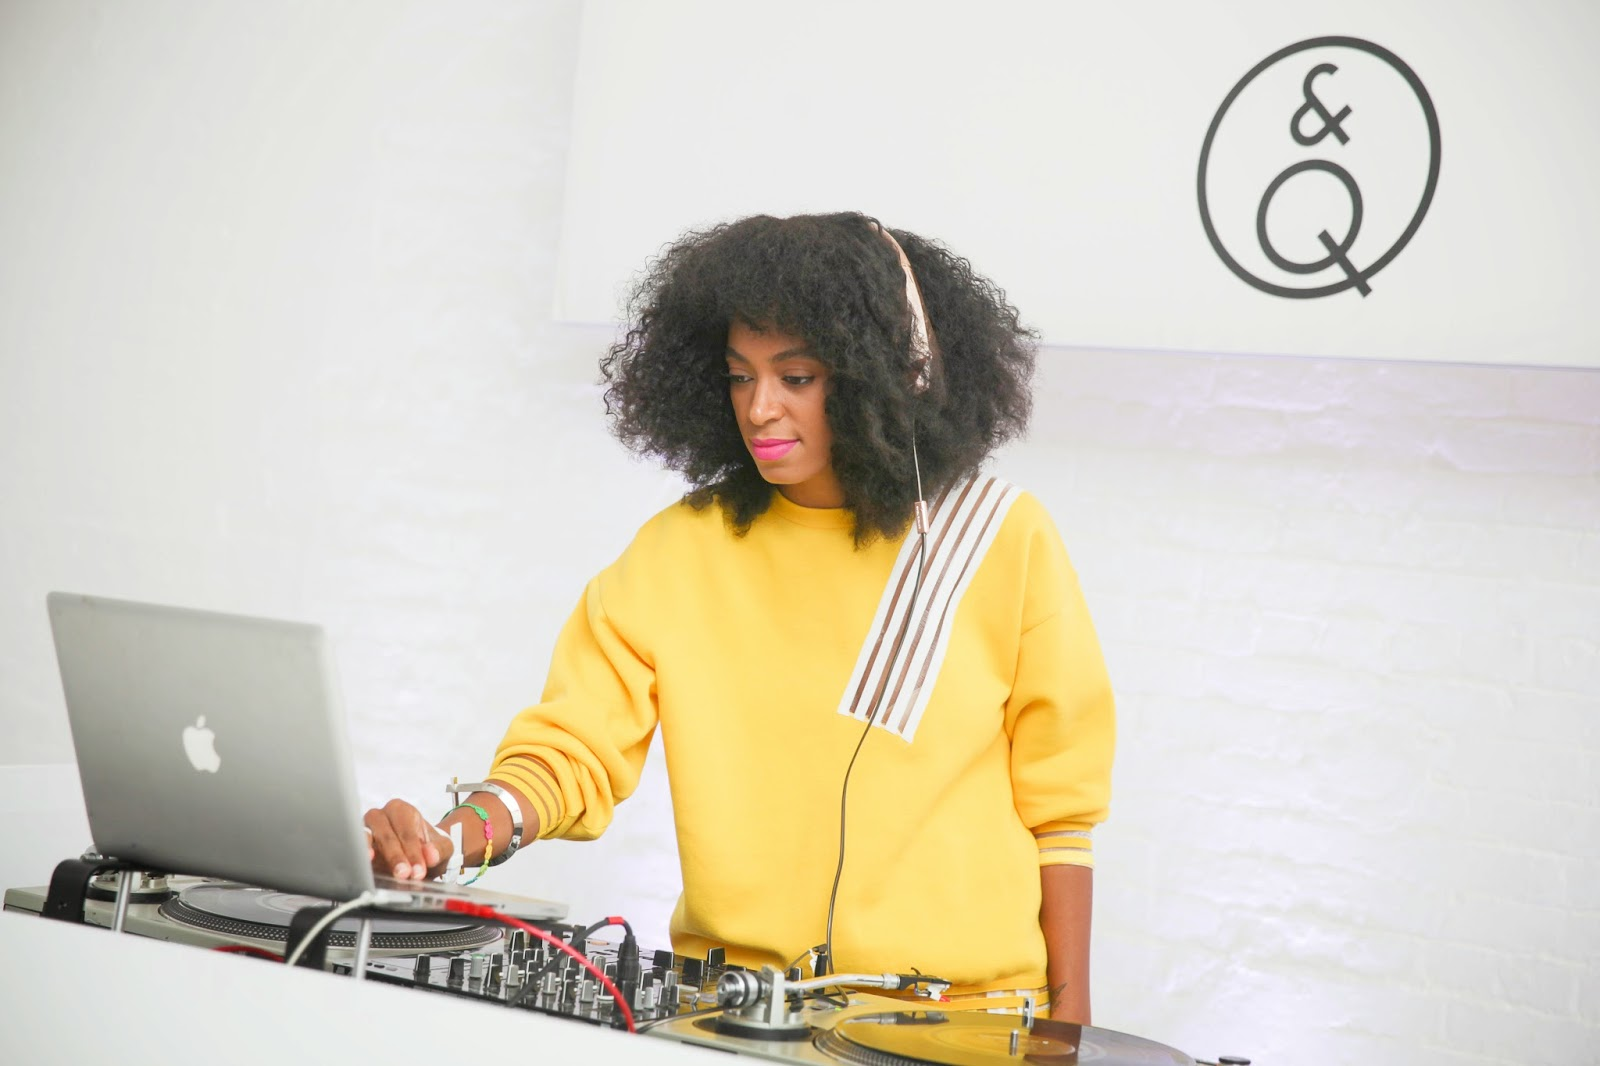 Q&Q hosted their US debut celebration with DJ Solange Knowles